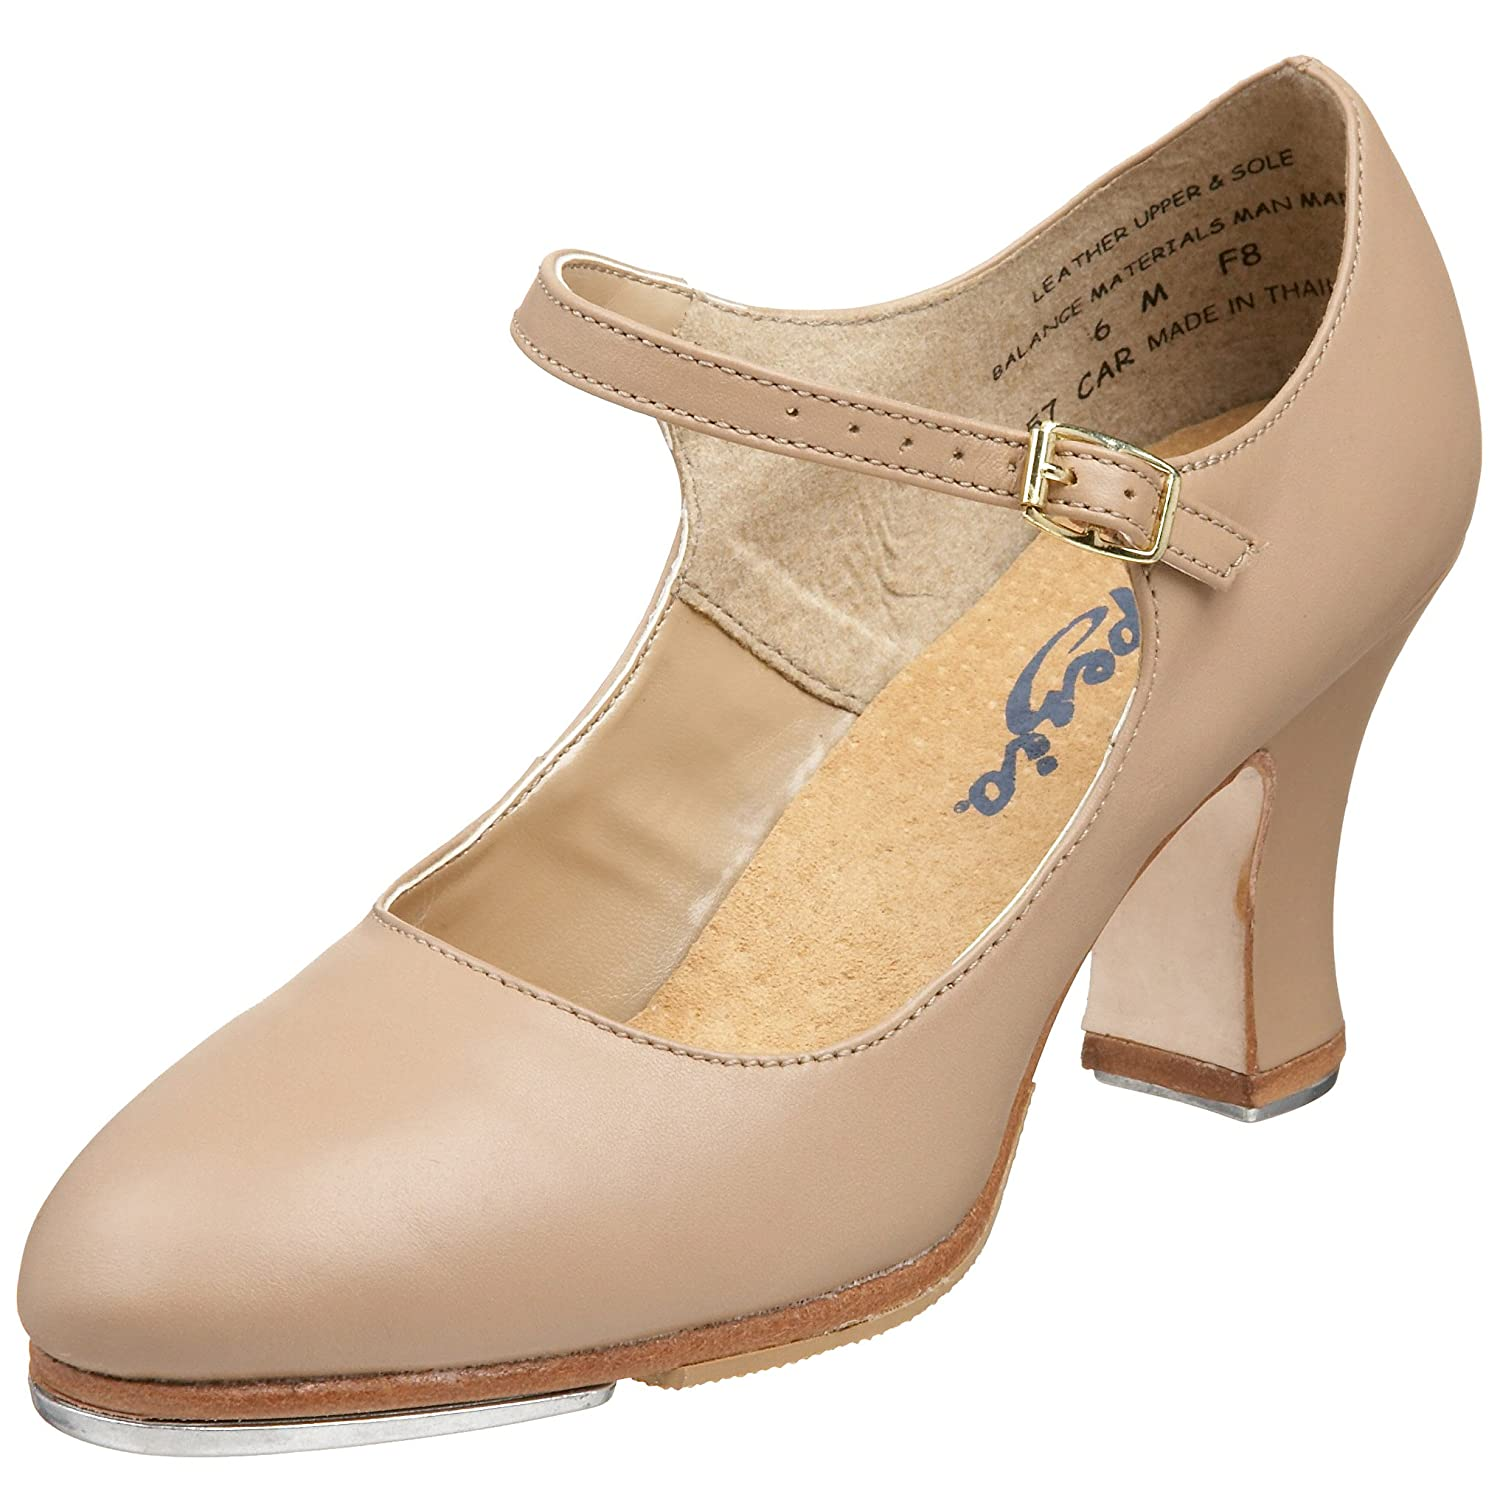 Vintage Style Shoes, Vintage Inspired Shoes Capezio Womens 657 Manhattan Xtreme Tap Shoe $82.95 AT vintagedancer.com